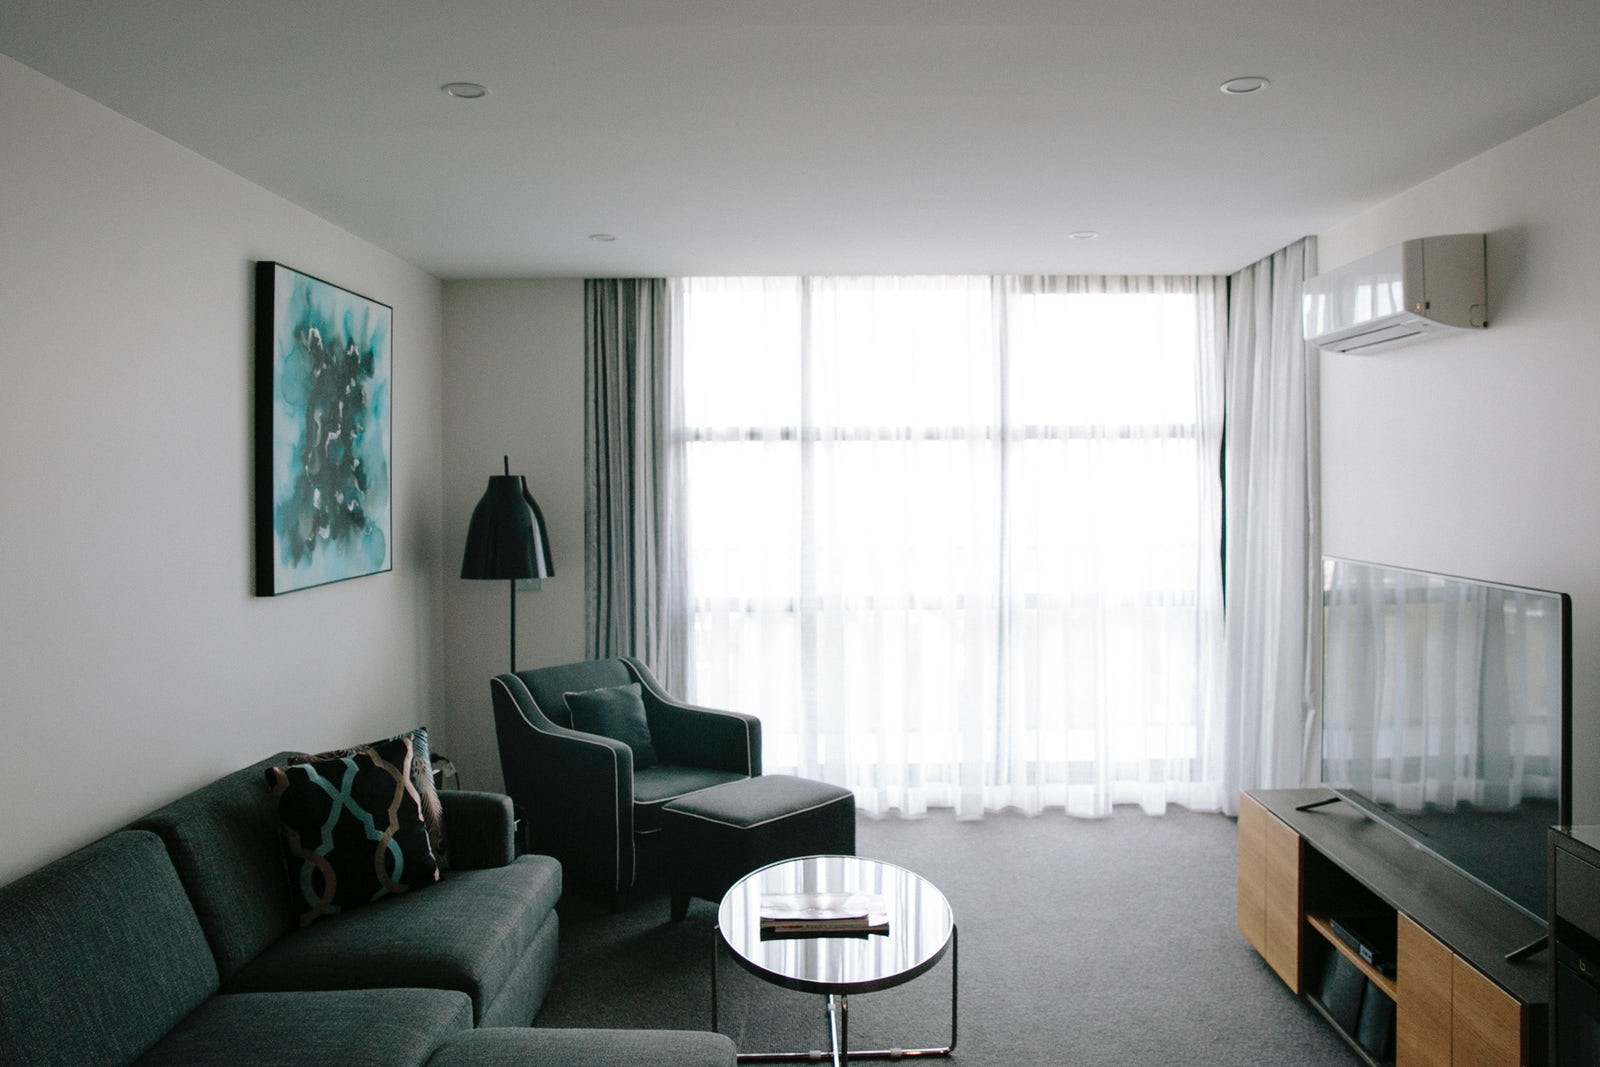 Luxury 1 bedroom aparment lounge at Avenue Hotel, Canberra